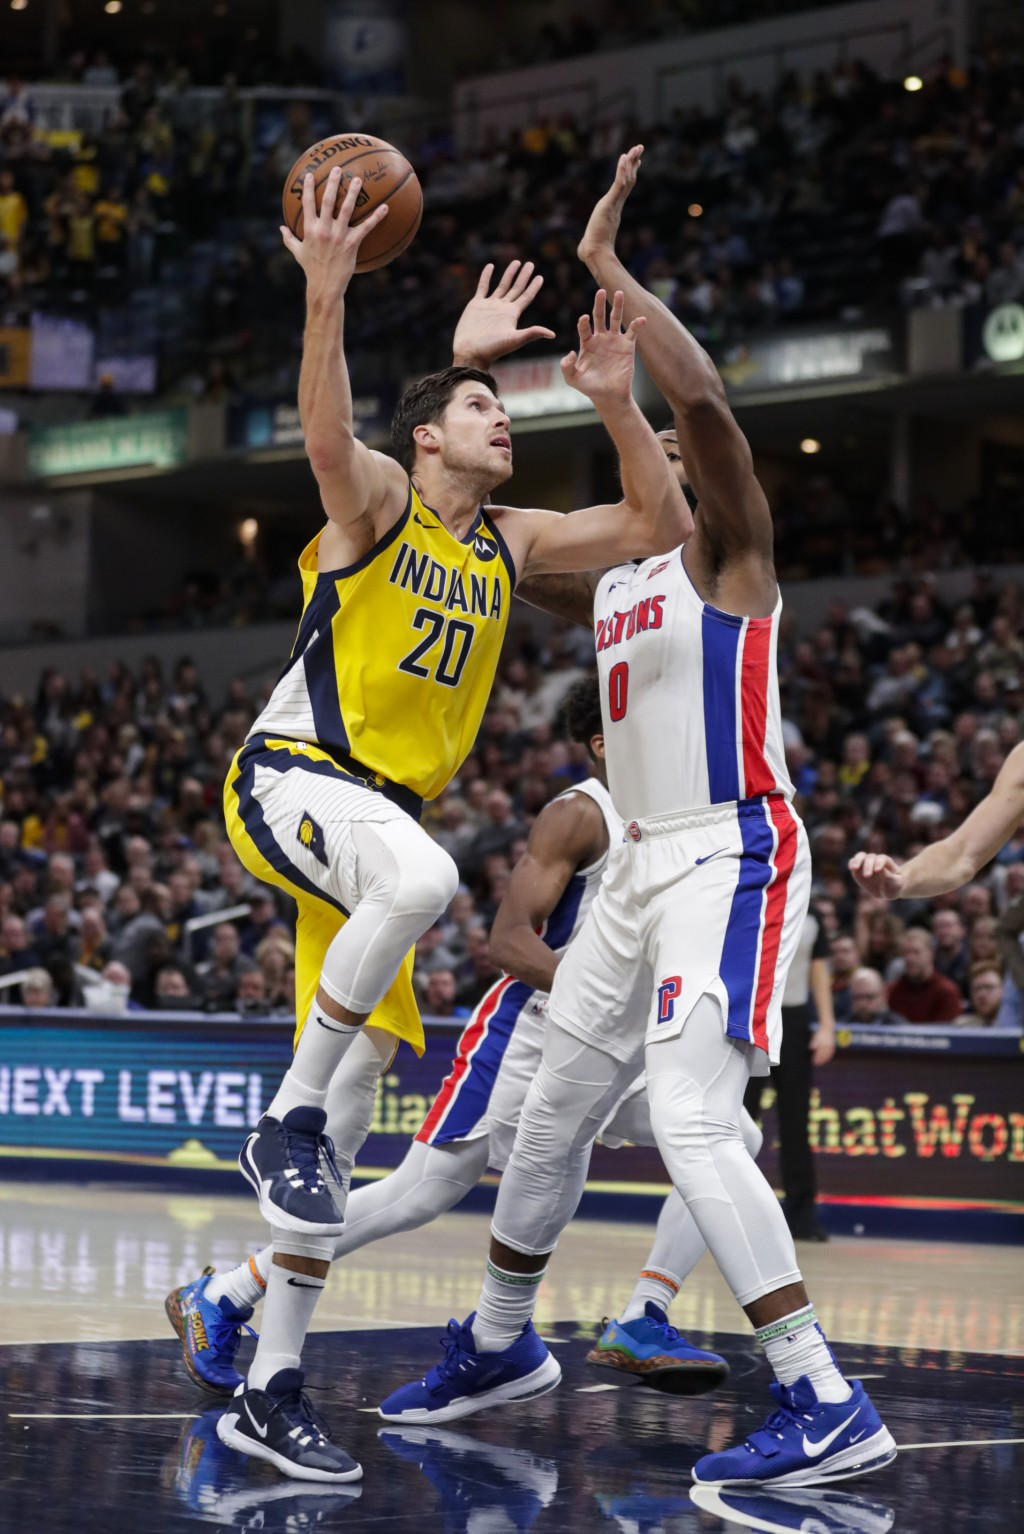 Indiana Pacers forward Doug McDermott (20) shoots over Detroit Pistons center Andre Drummond (0) during the second half of an NBA basketball game in I...